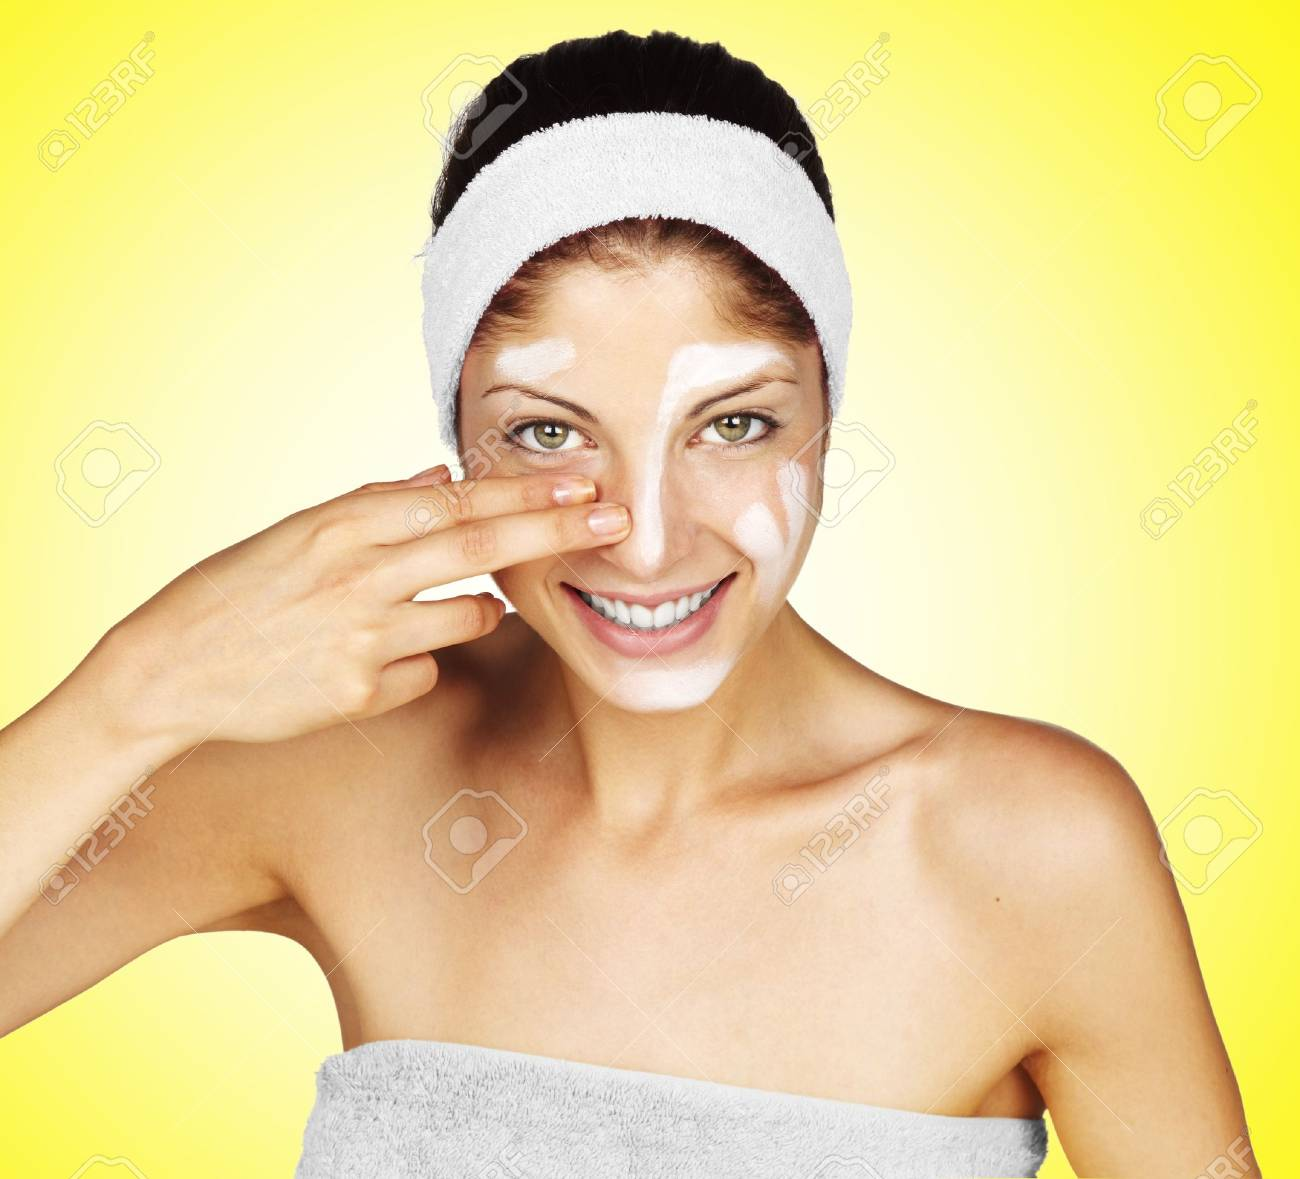 Beautiful young woman applying a creme on her face Stock Photo - 16968842